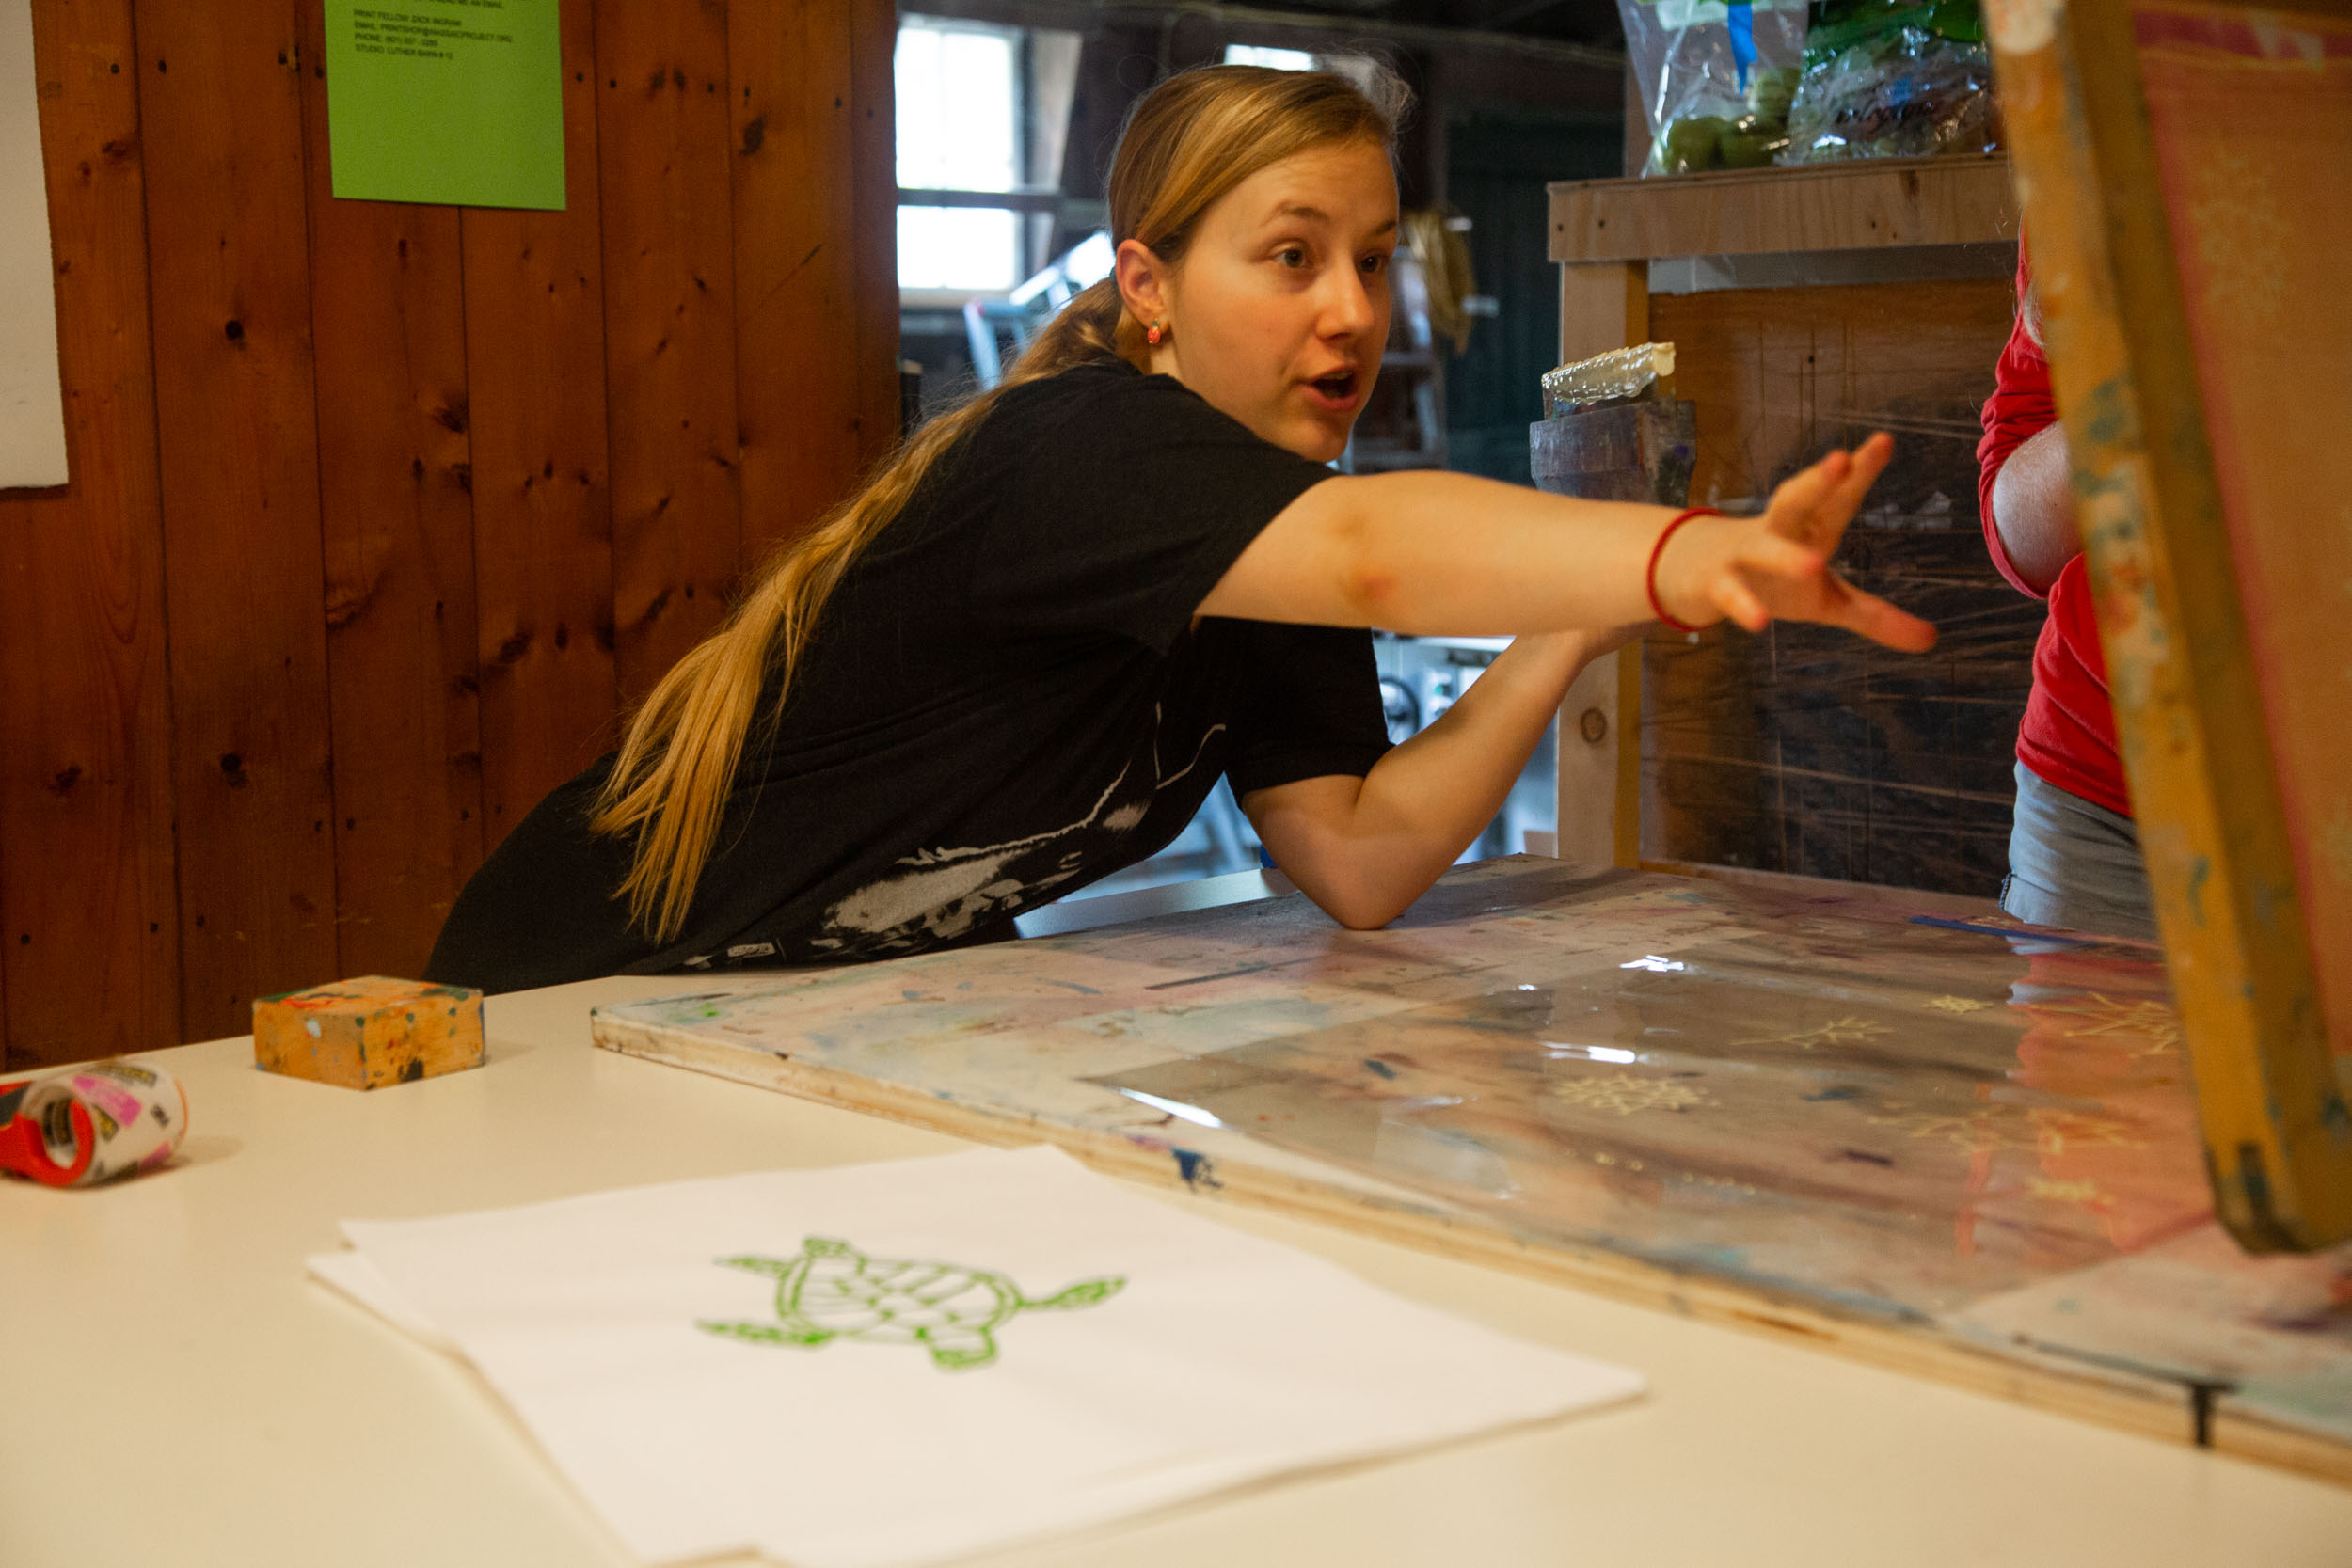 wassaic-project-education-teen-screenprinting-camp-2018-08-16-14-09-26.jpg